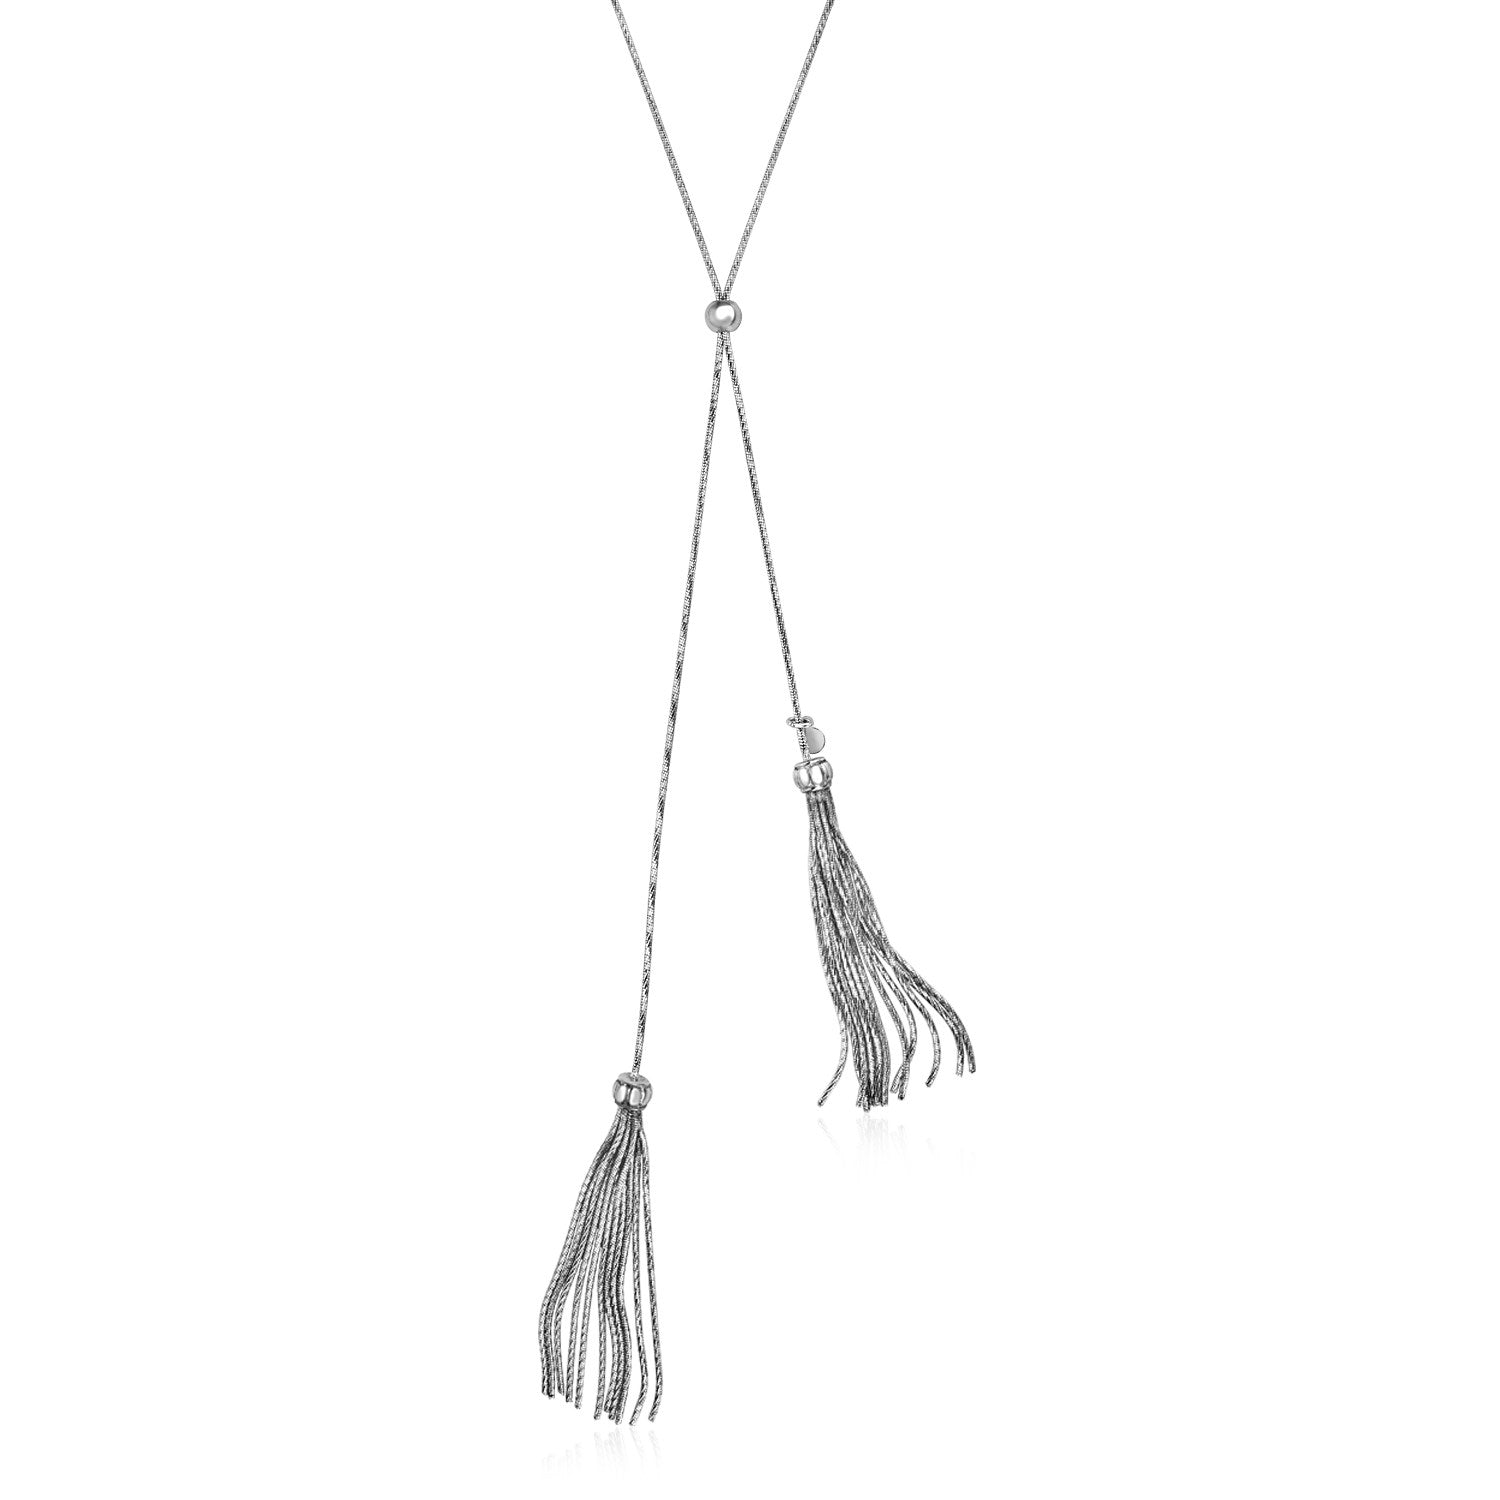 Adjustable Necklace with Tassels in Sterling Silver